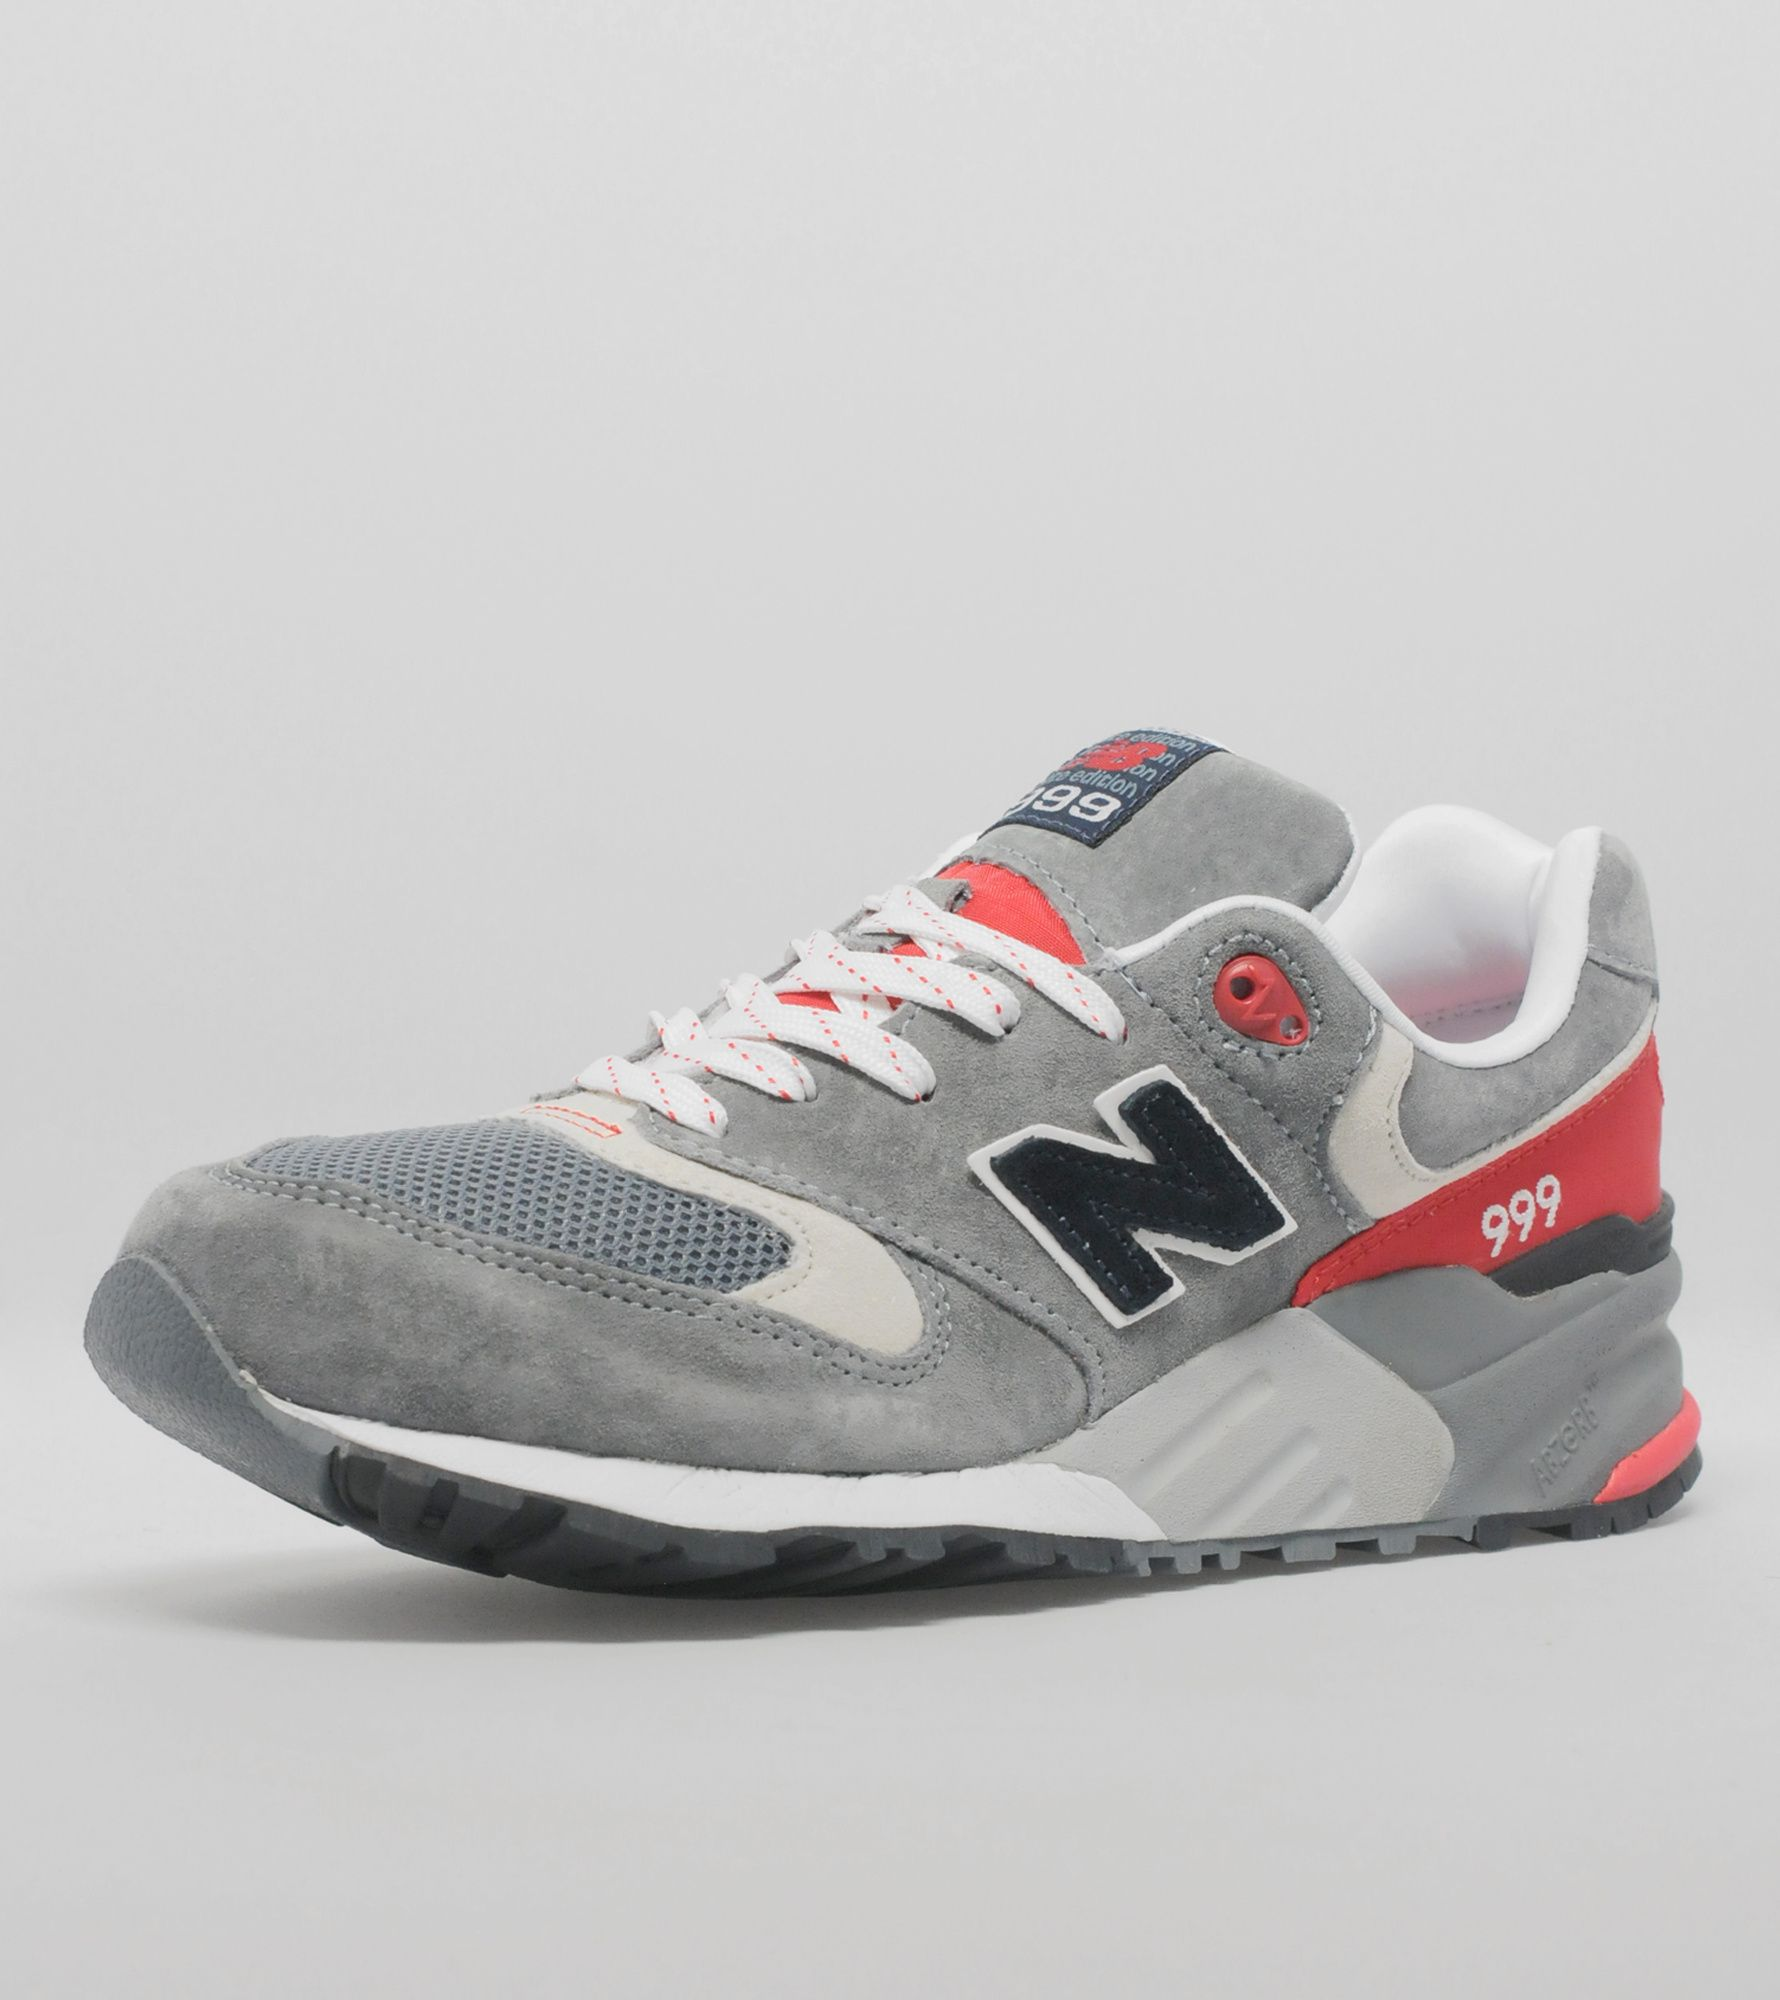 info for 21b4a 90cc7 new zealand new balance sneakers 999 bae09 613e8